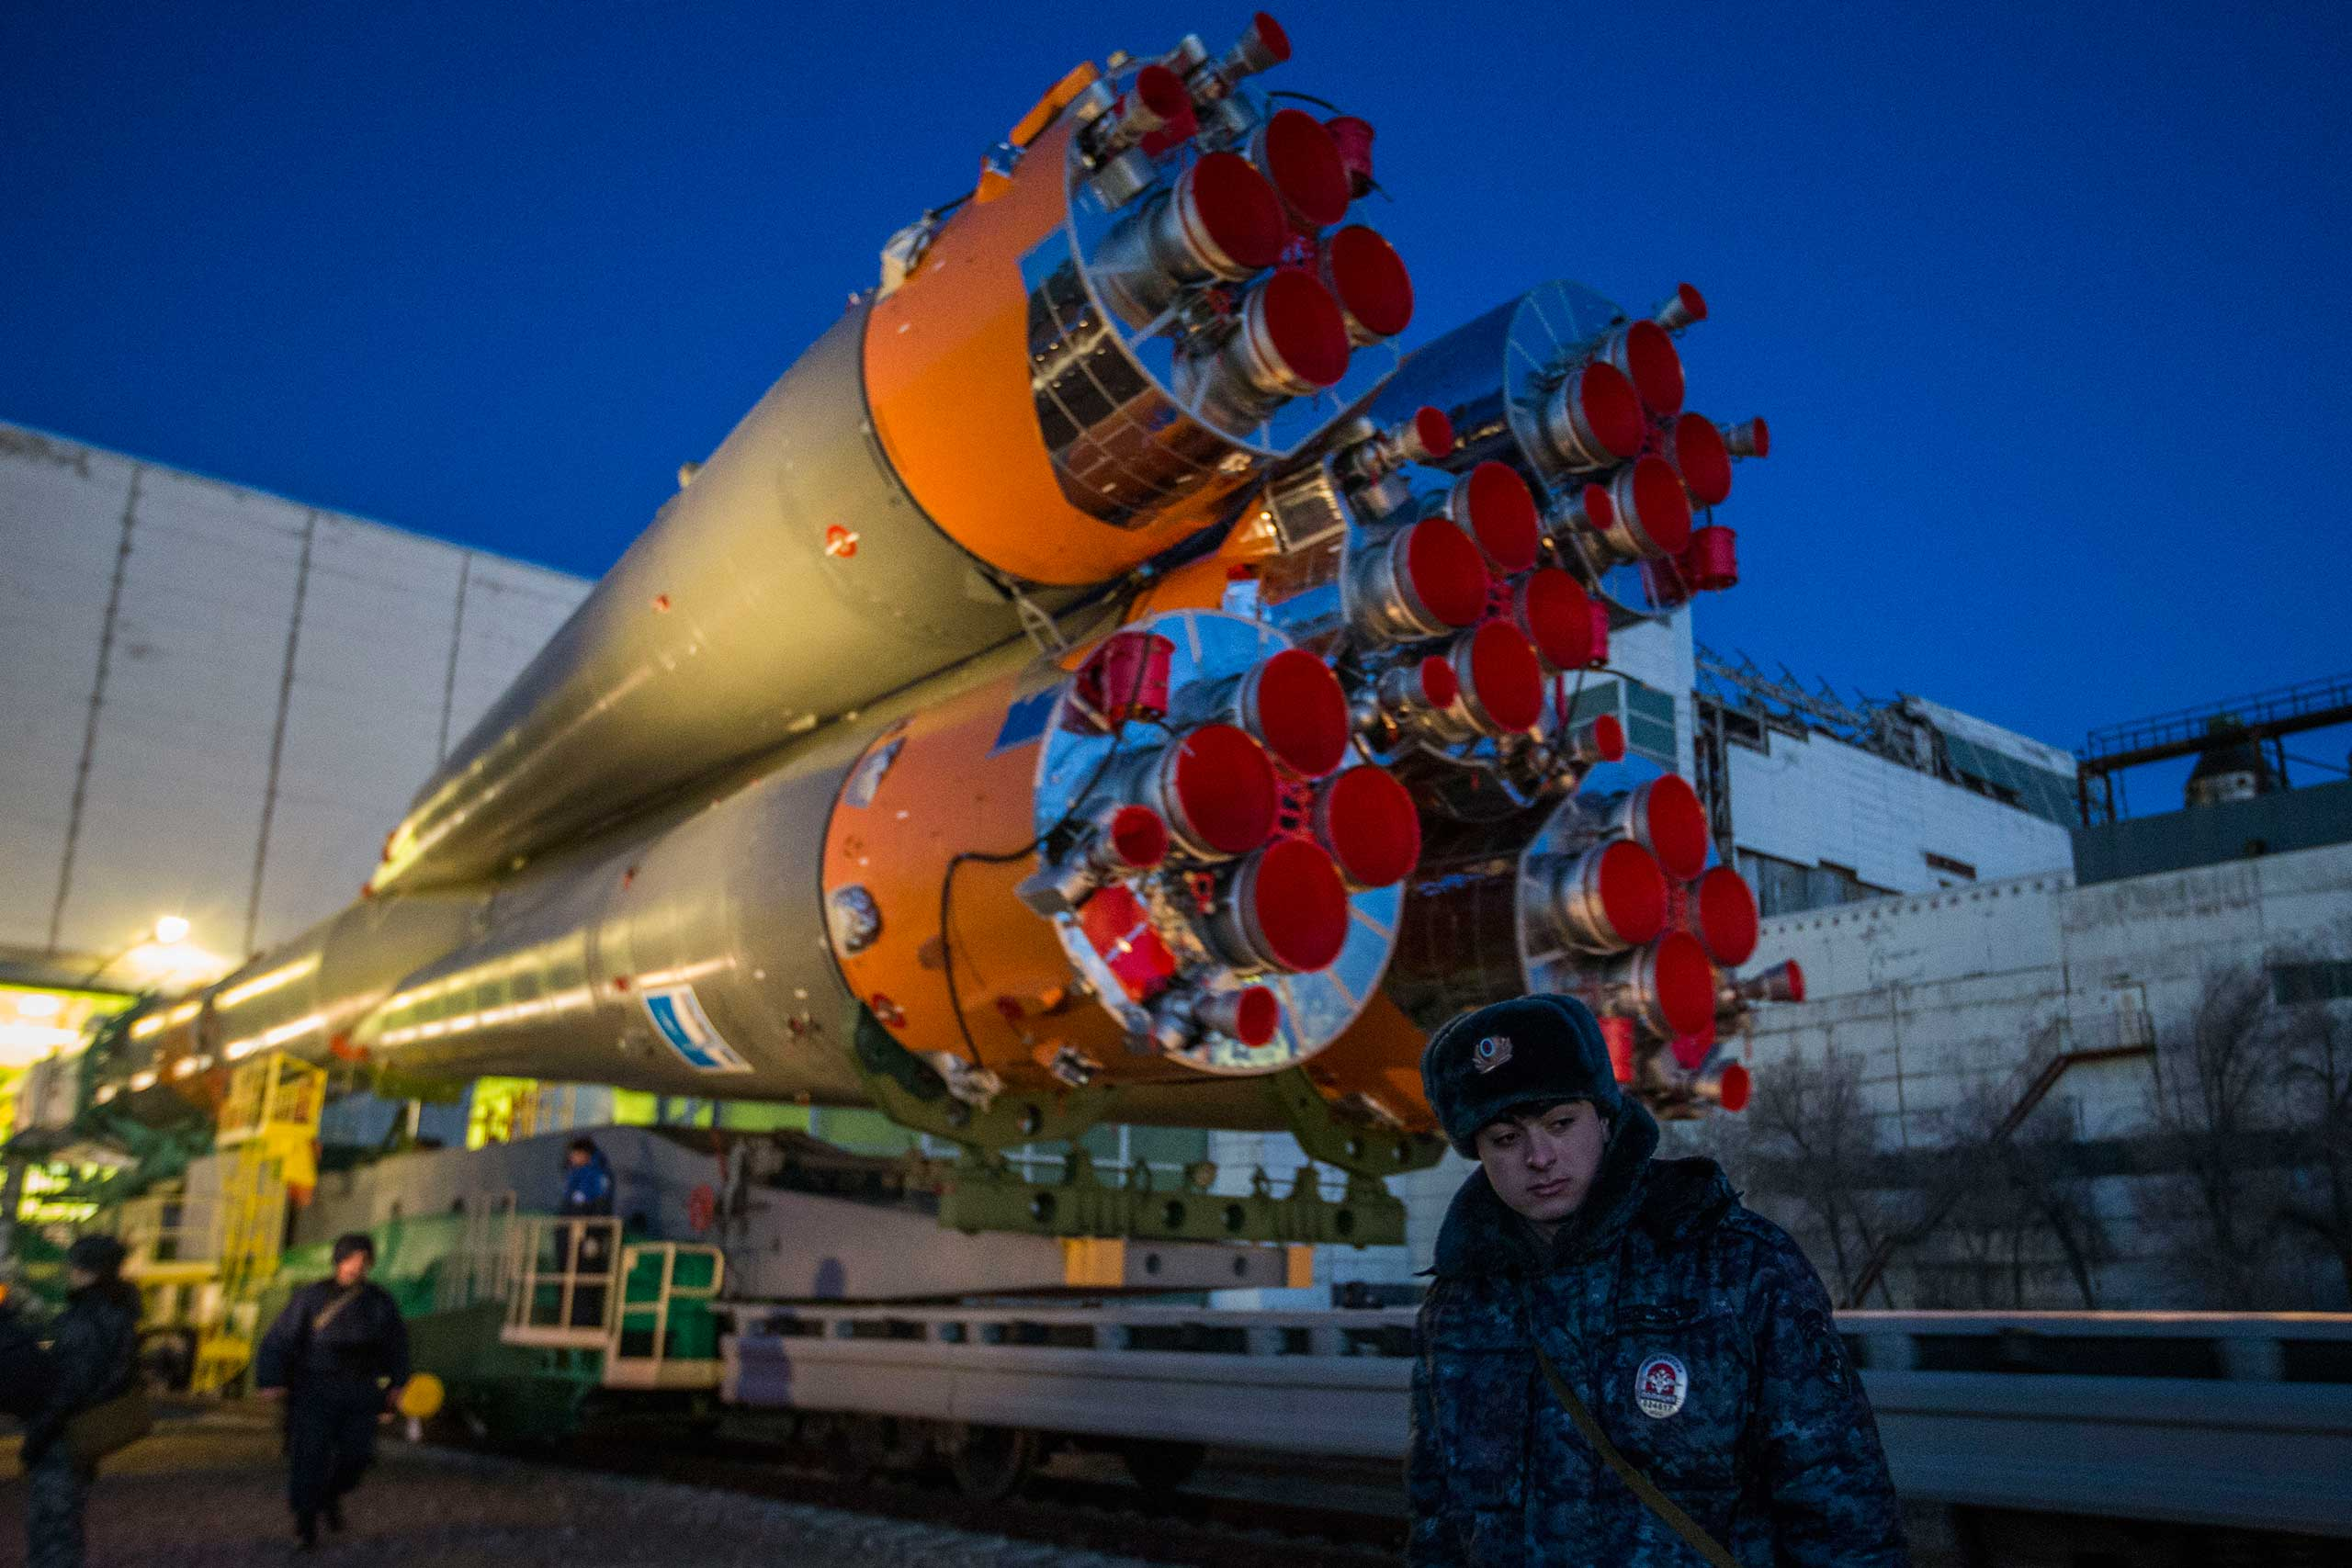 A member of the Russian guard stands in front of the Soyuz as it is rolled out for launch at the Baikonur Cosmodrome in Kazakhstan on Wednesday, March 25.